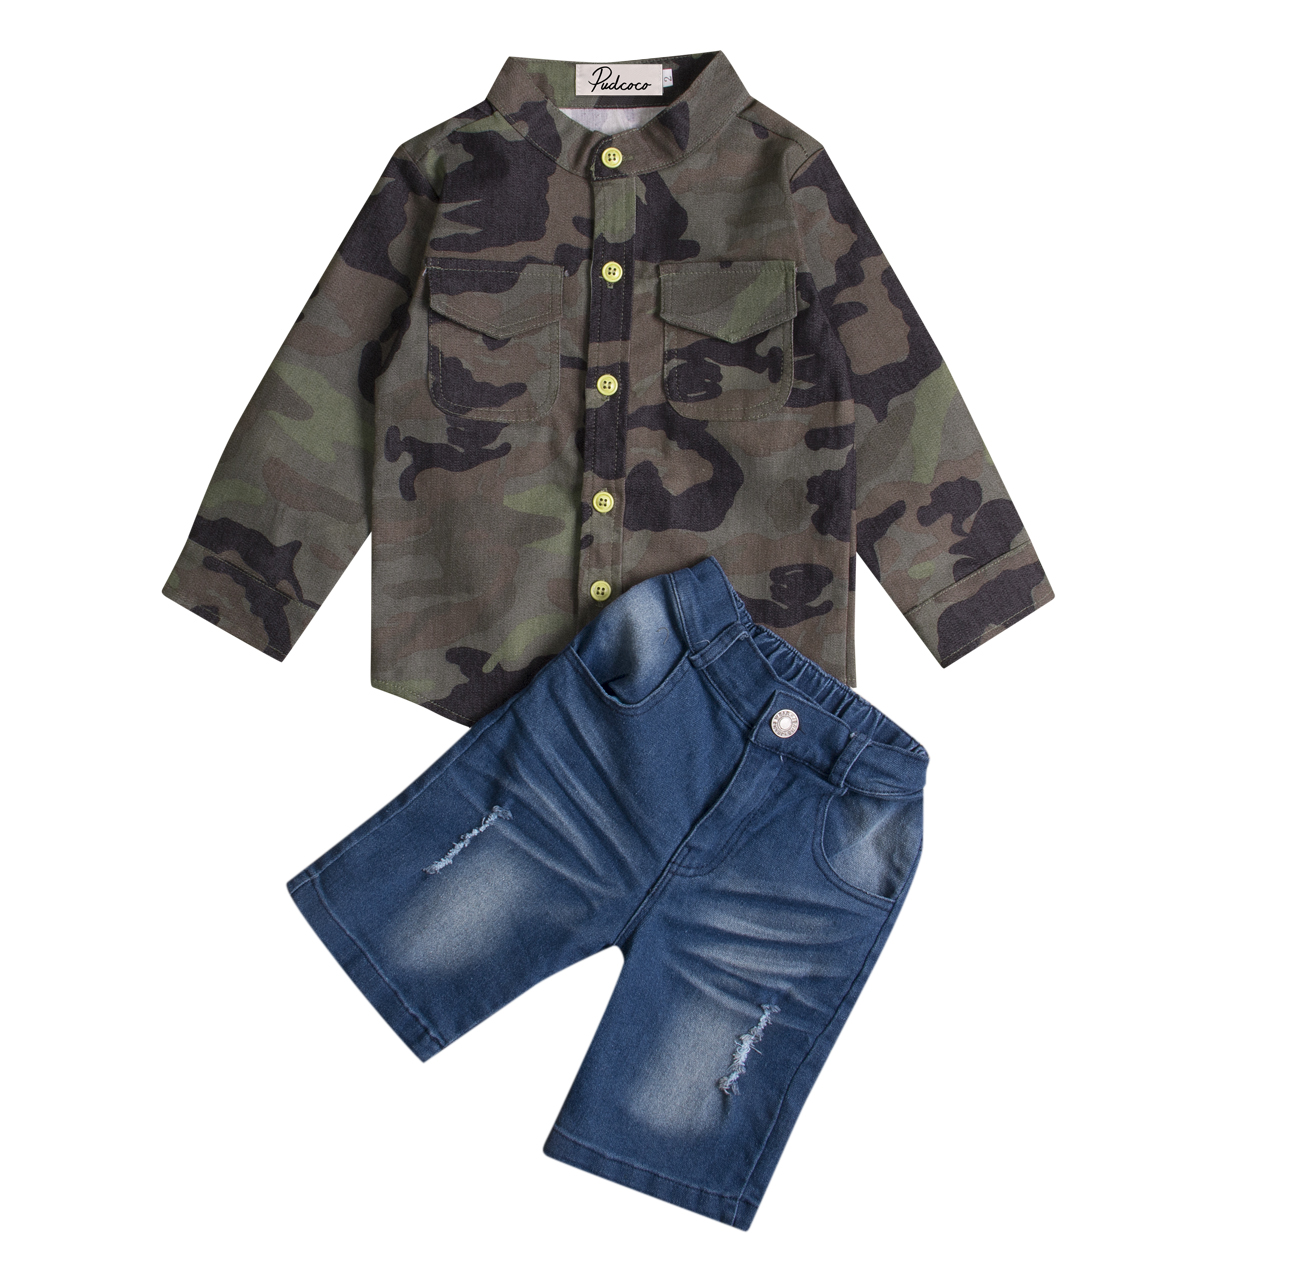 Street Style Kids Long Sleeve Baby Boy Camouflage T-shirt Shirt+Torn Jeans Shorts Cool  2pcs Outfits Clothing Set прогулочные коляски cool baby kdd 6699gb t